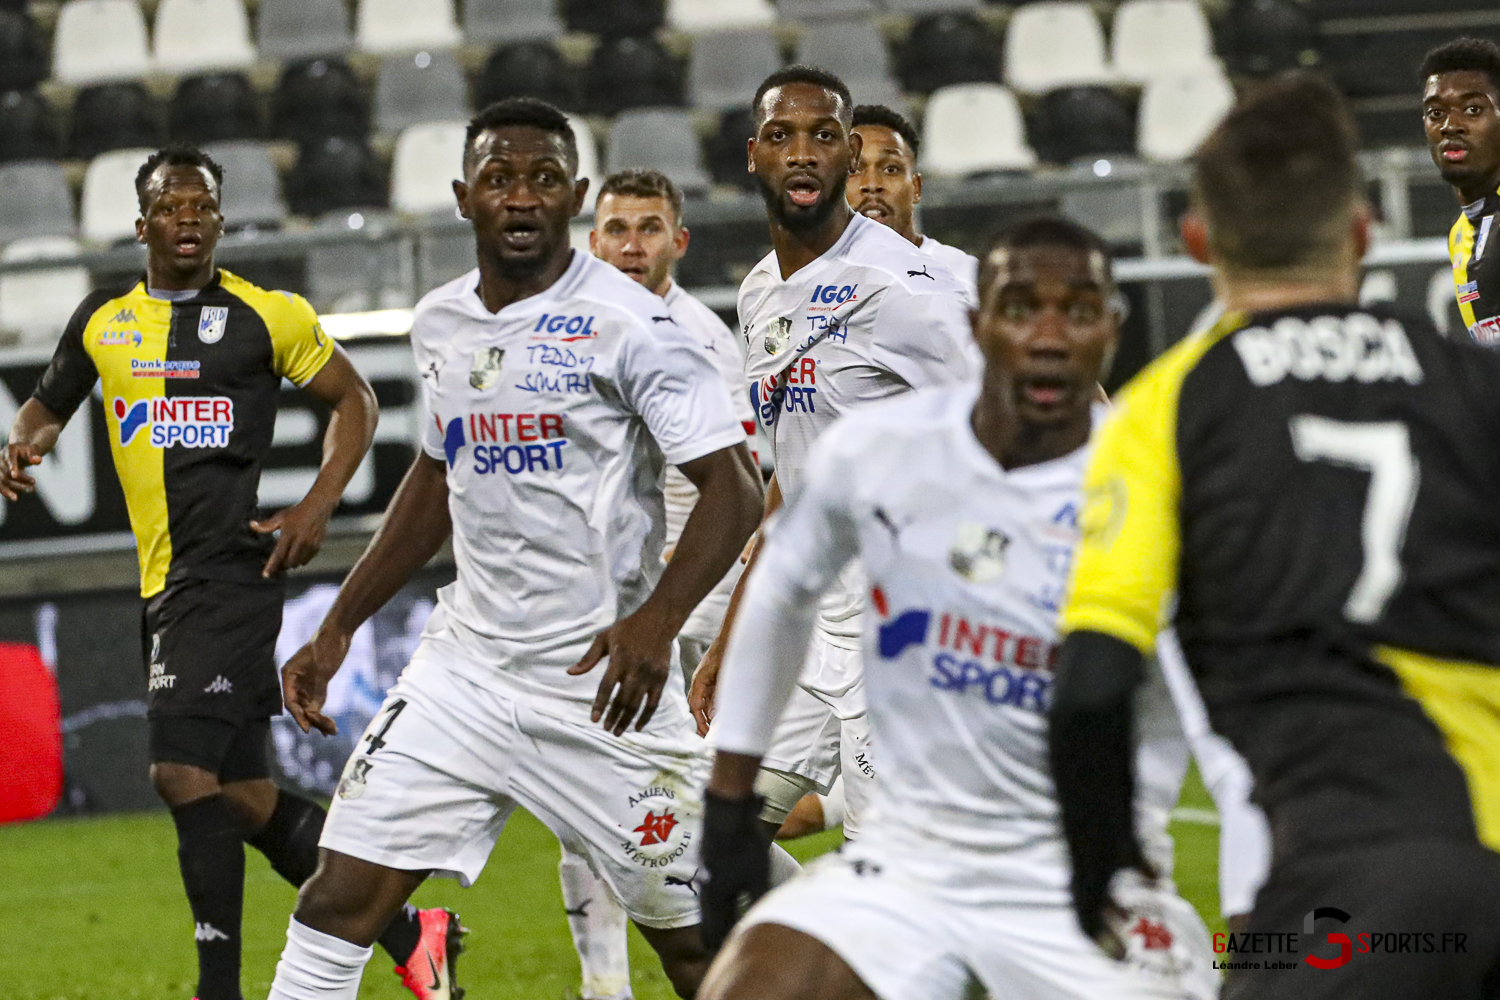 Football Amiens Vs Dunkerque Ligue 2 0050 Leandre Leber Gazettesports